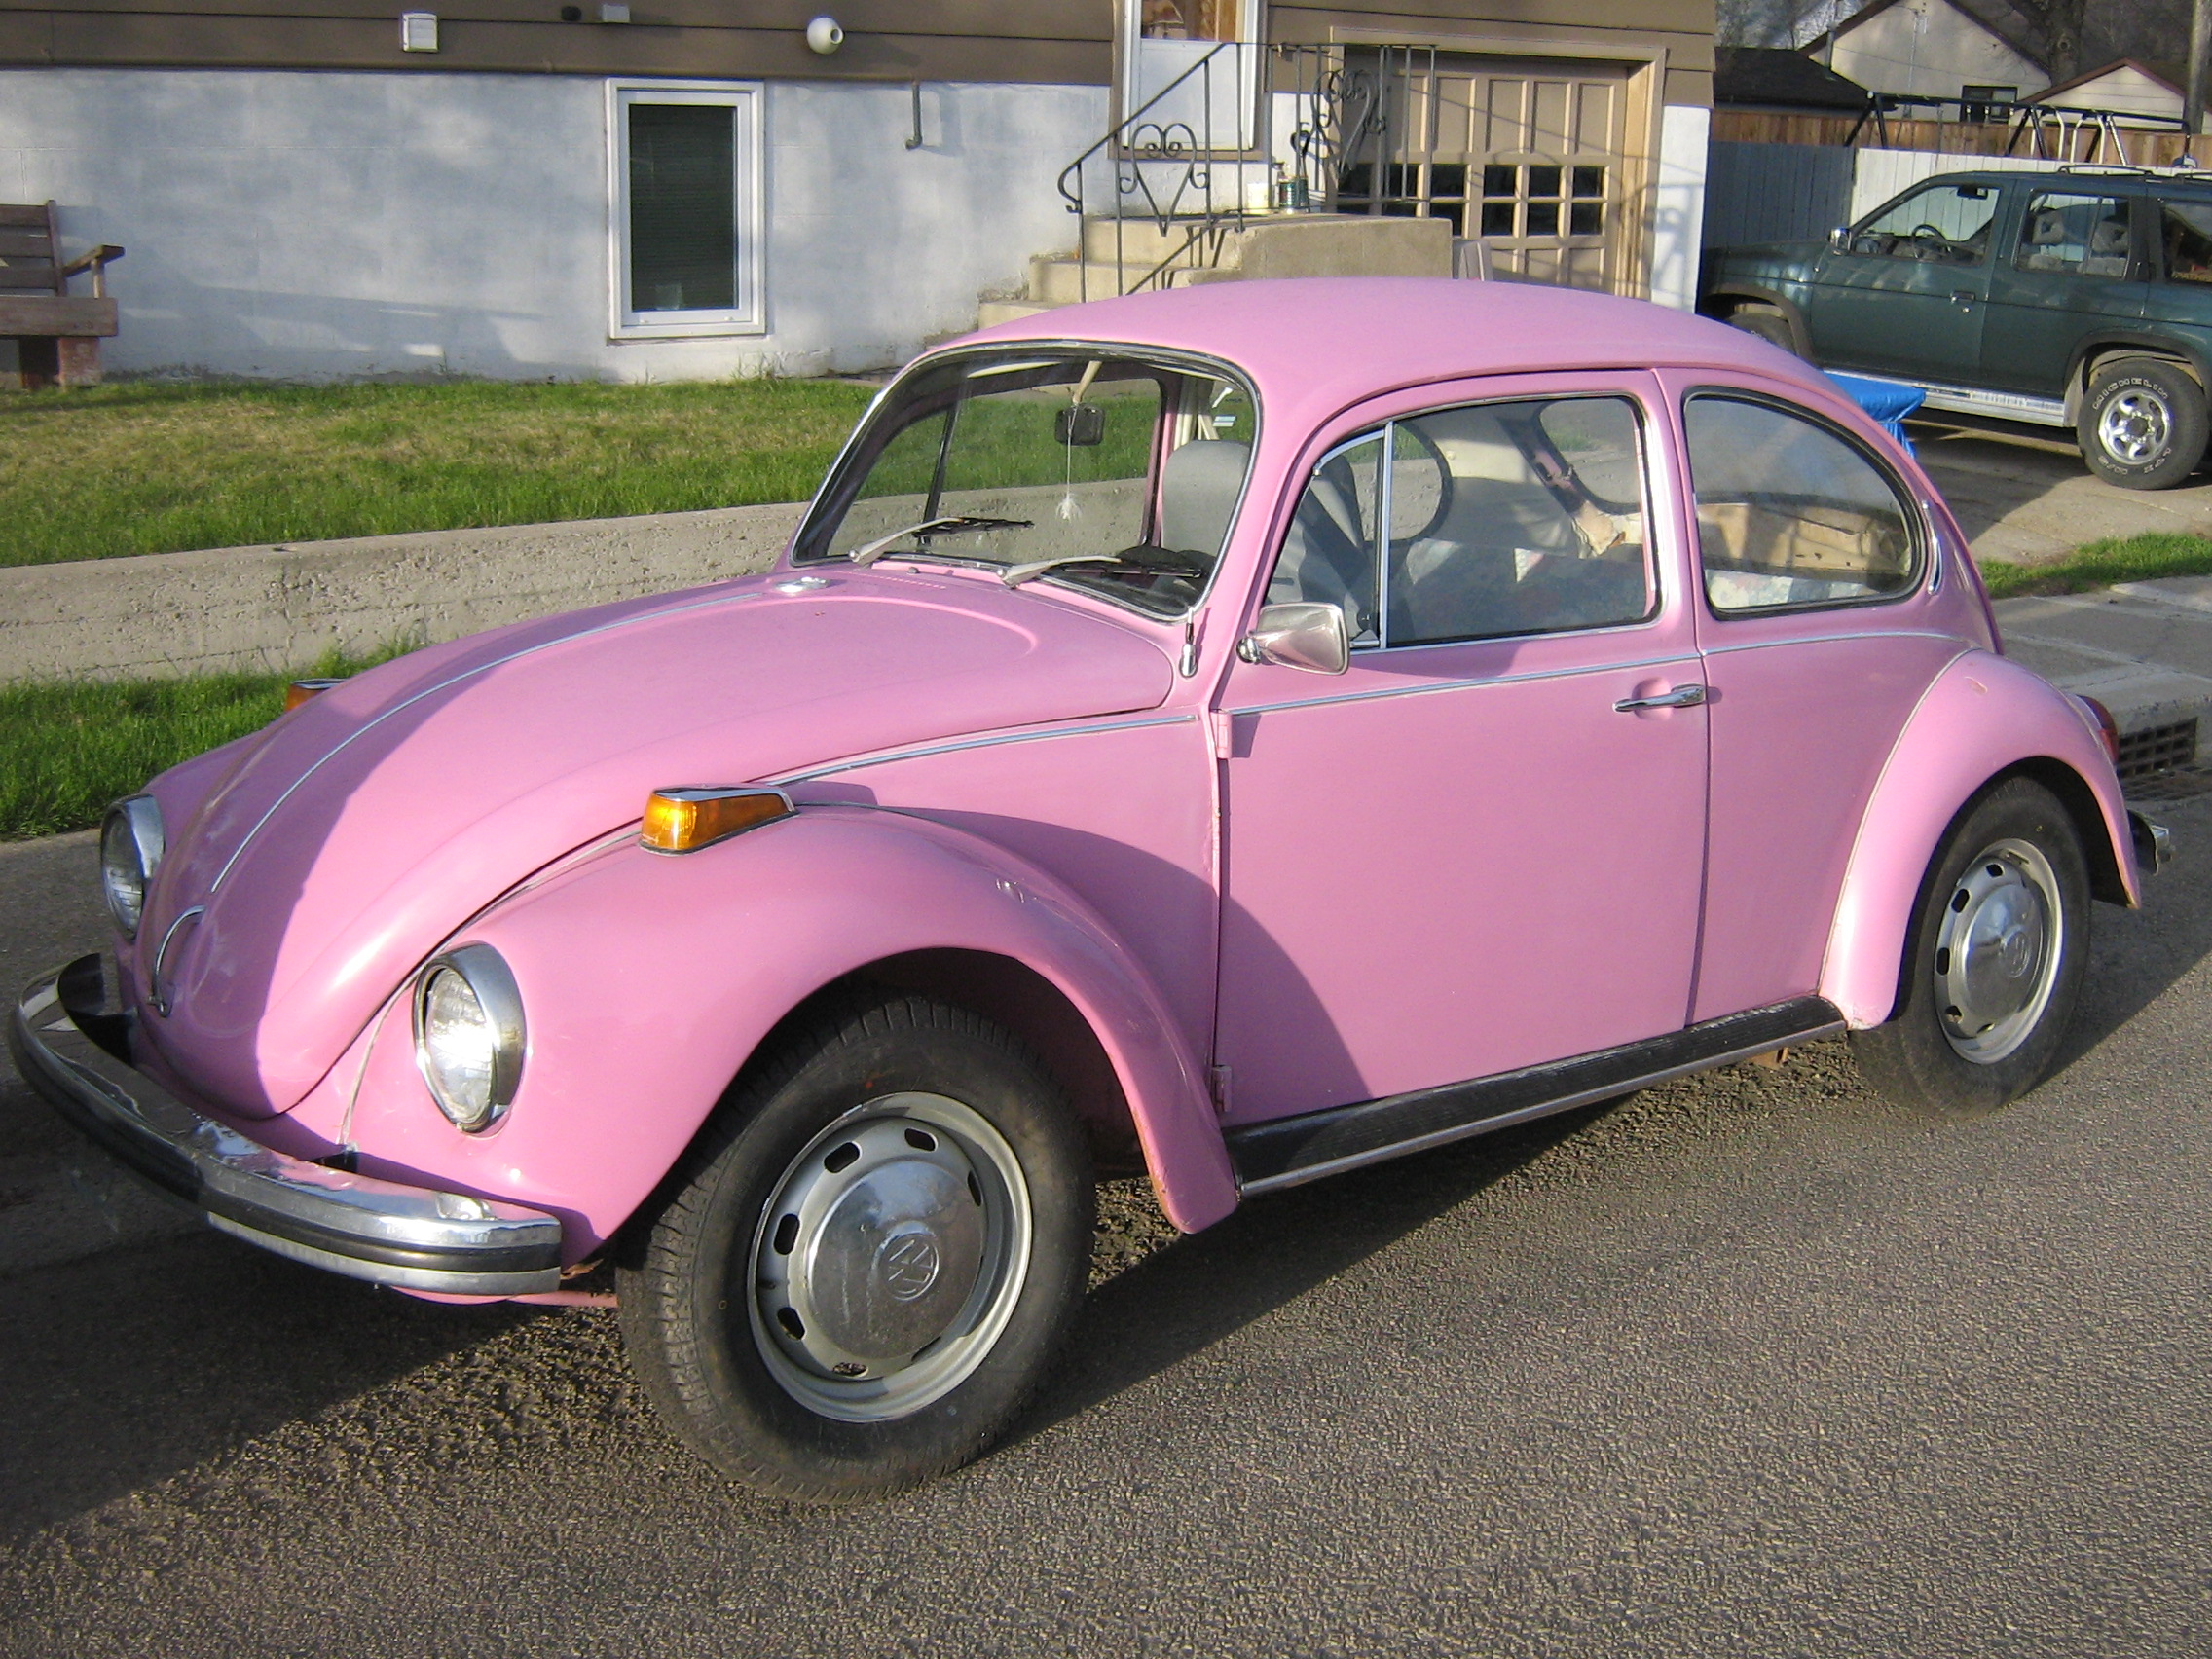 dealer looking your highly and you vehicle review we beetle compact local drive for volkswagen are pink if test in the a autonation recommend unique visiting something market re pinkbeetle